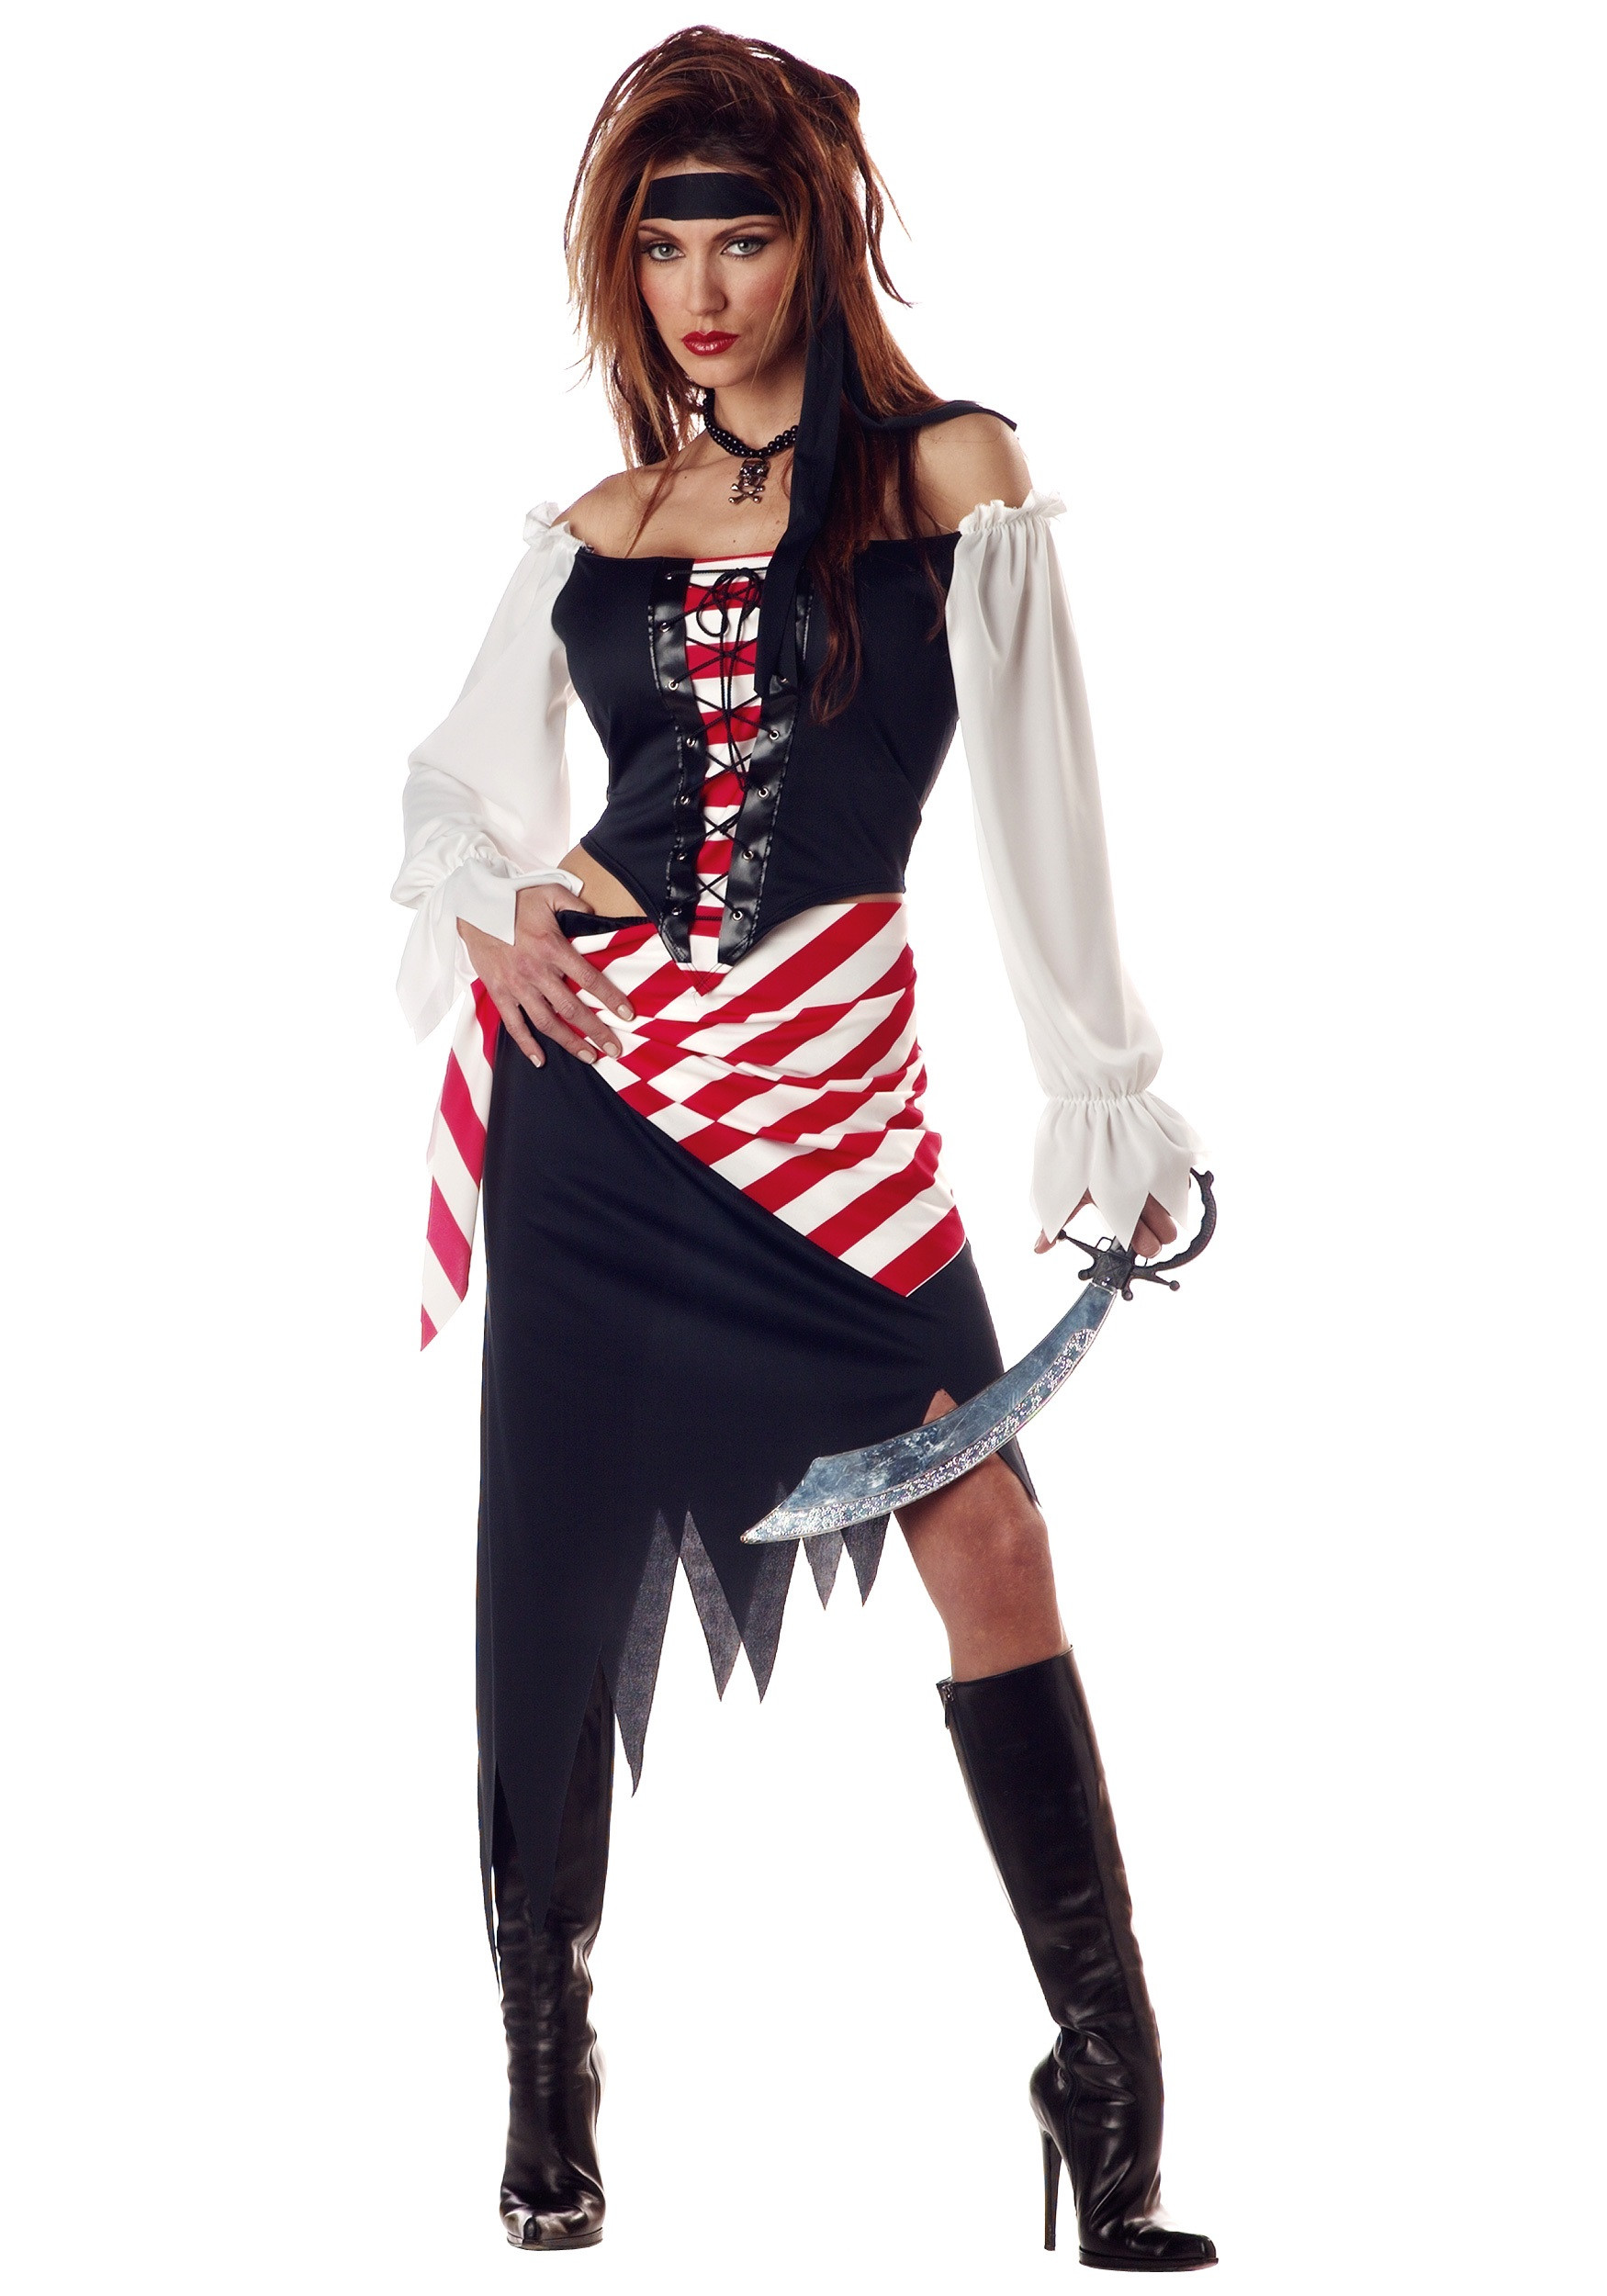 Best ideas about Women DIY Costumes . Save or Pin Adult Ruby the Pirate Beauty Costume La s Pirate Costumes Now.